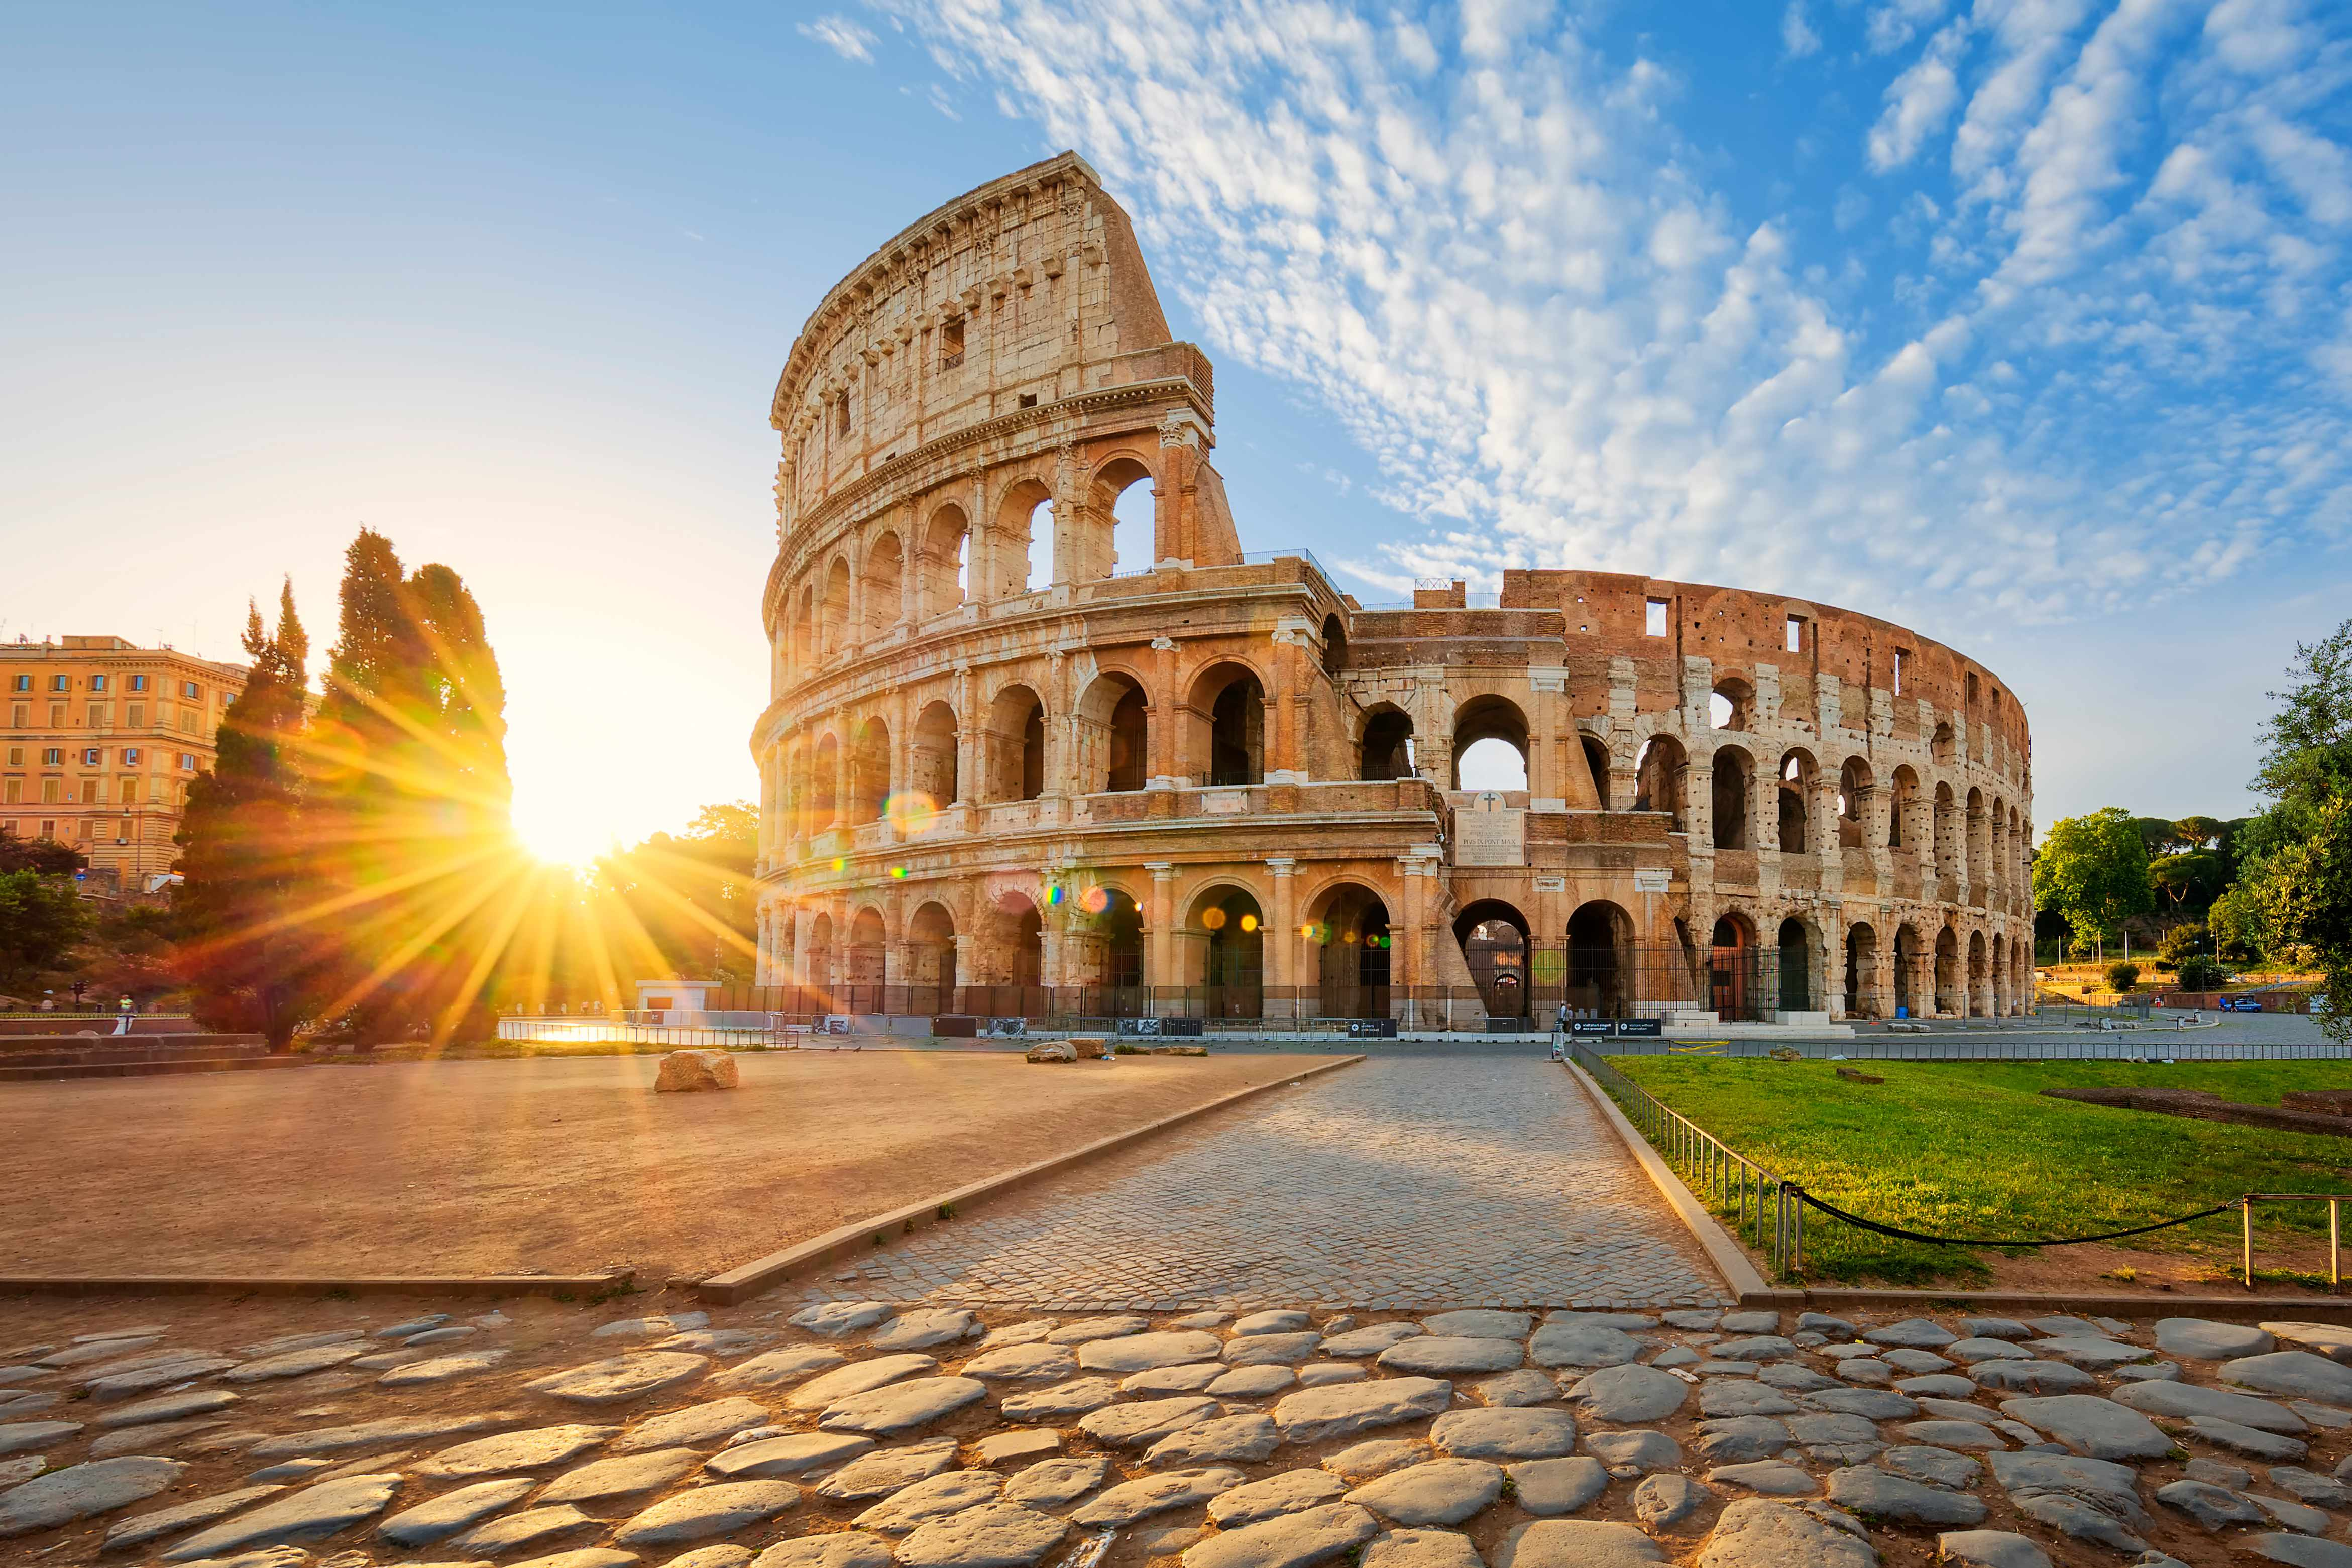 Colosseum in Rome, Italy. © Getty